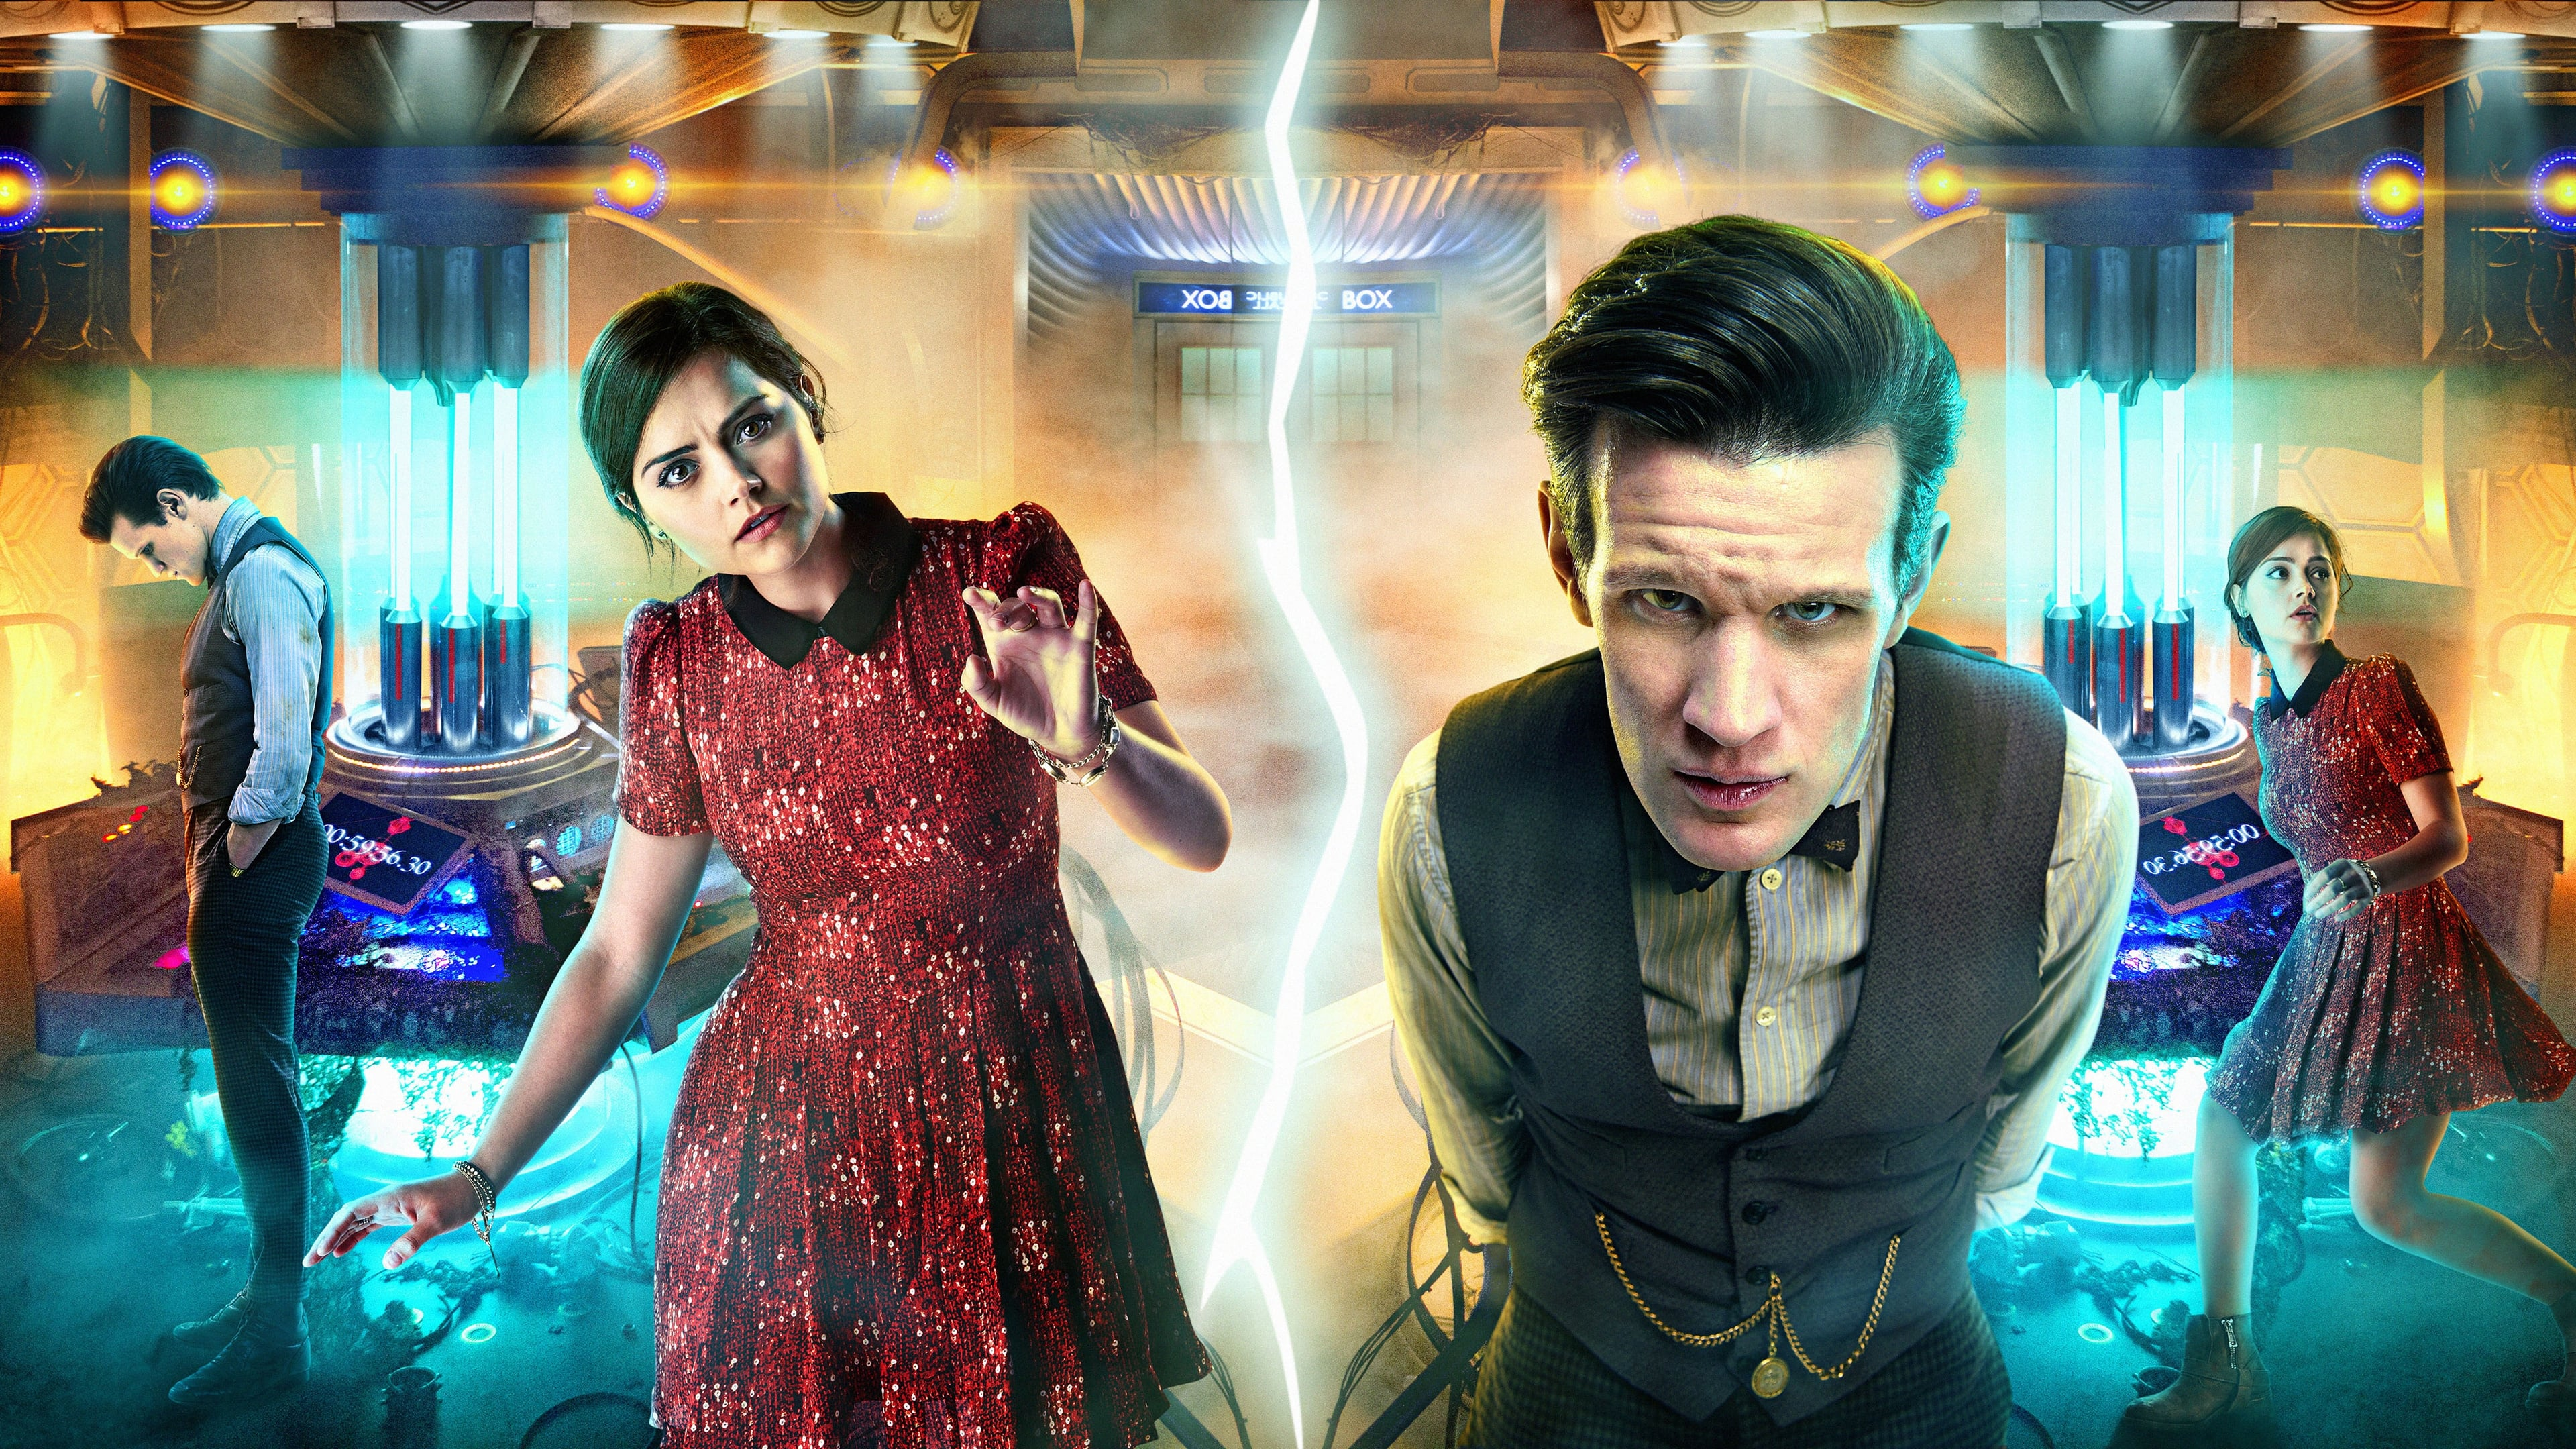 Doctor Who - Season 7 Episode 10 : Journey to the Centre of the TARDIS